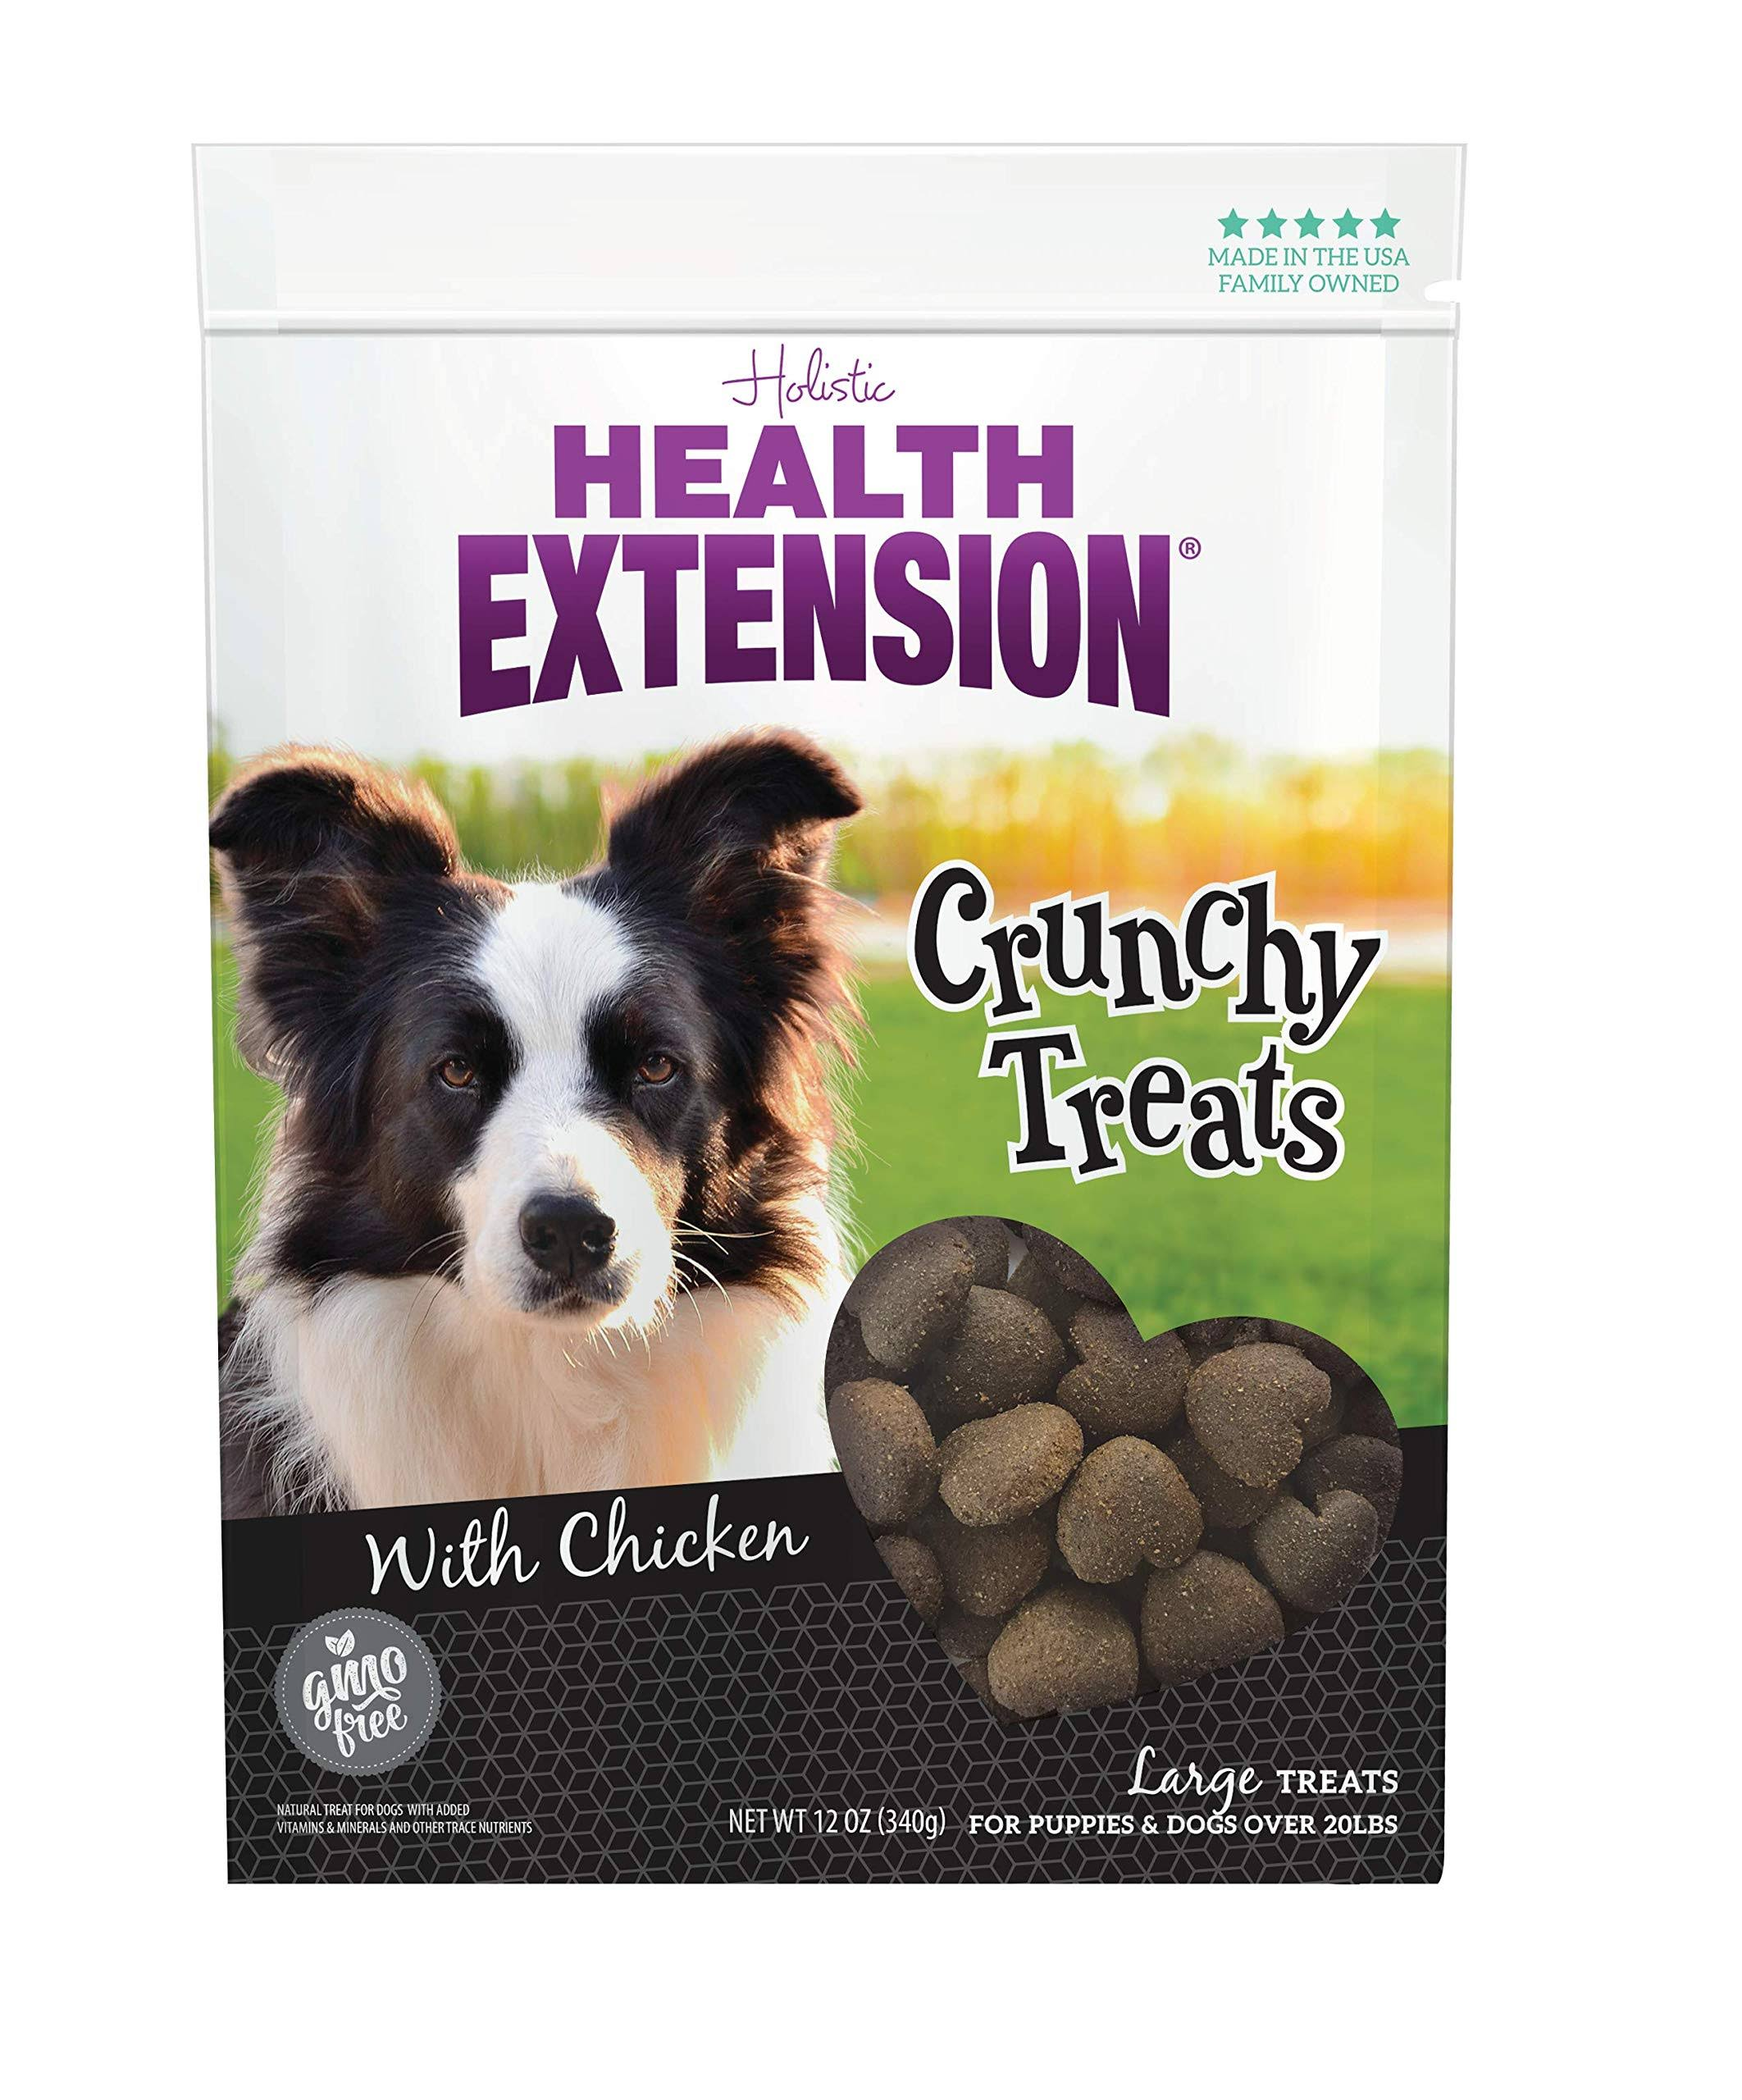 Health Extension Dog Supplies Treats - Heart Shaped, 1lb, Large